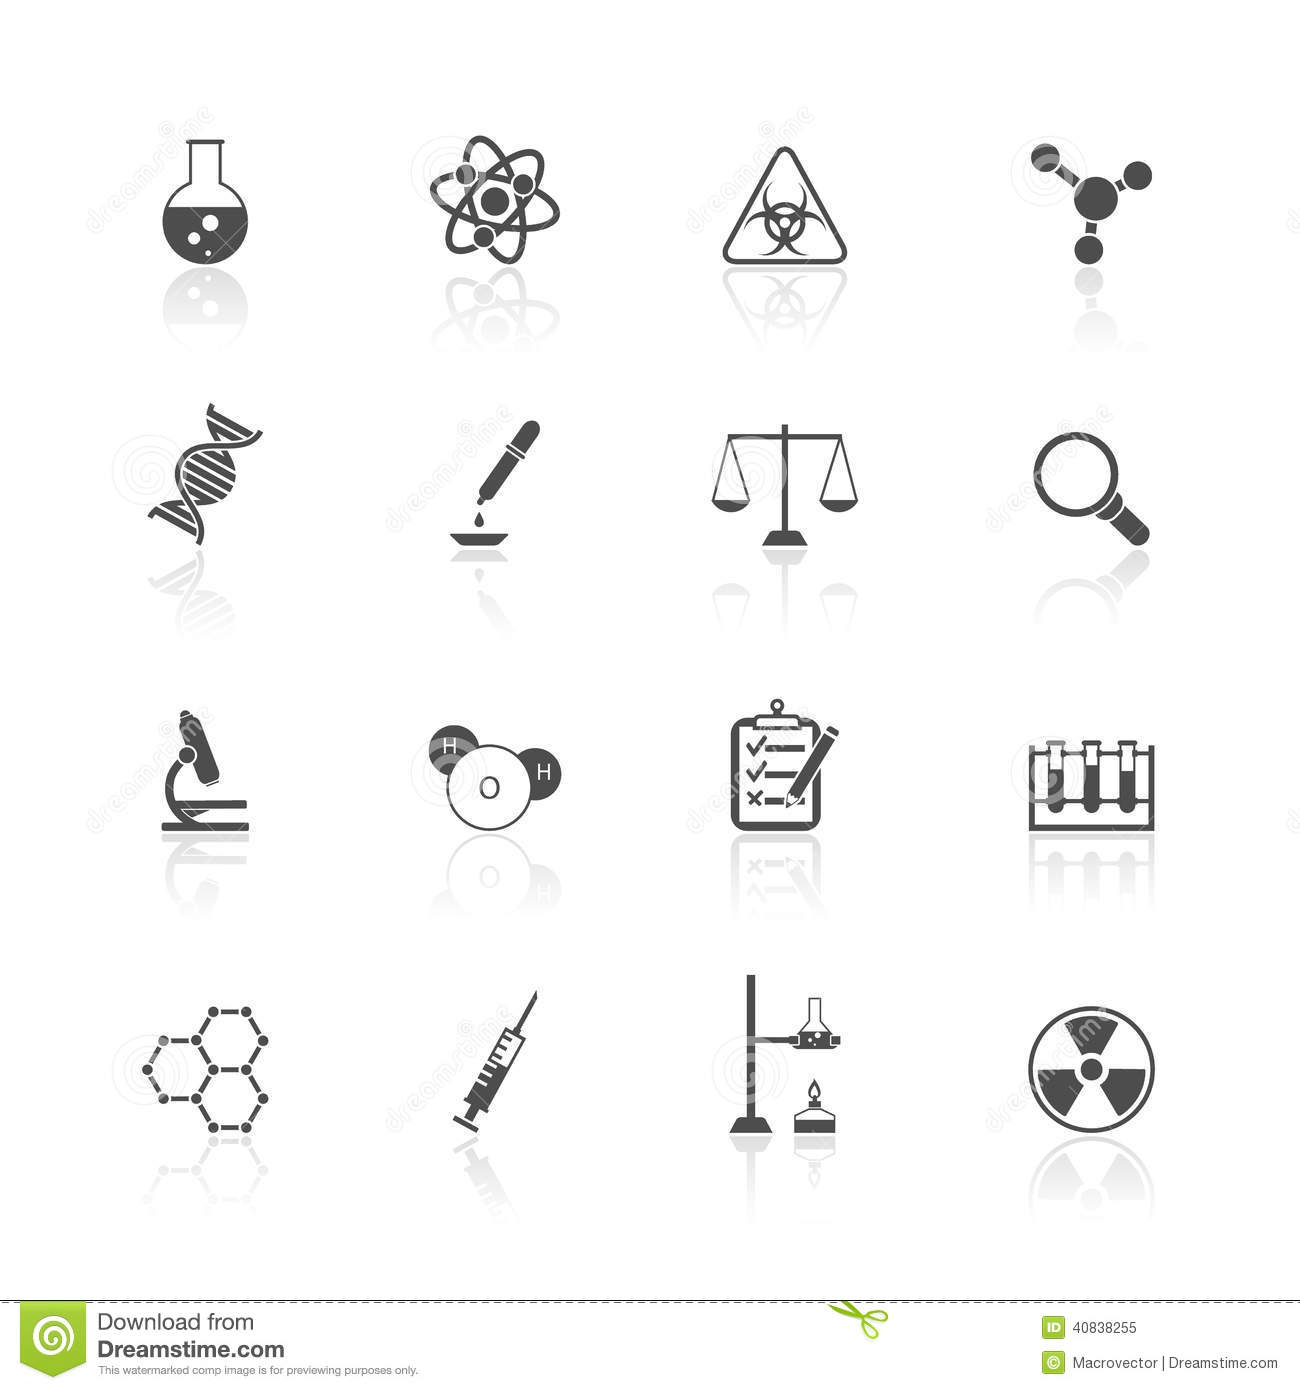 Sacred Geometry Vector Illustrations Vol 2 besides Extreme Sport Rock Climbing 20890 moreover Pencil Images additionally Science Biology Physics And Chemistry 14418403 furthermore Little Loops Double Page Border. on science art graphics